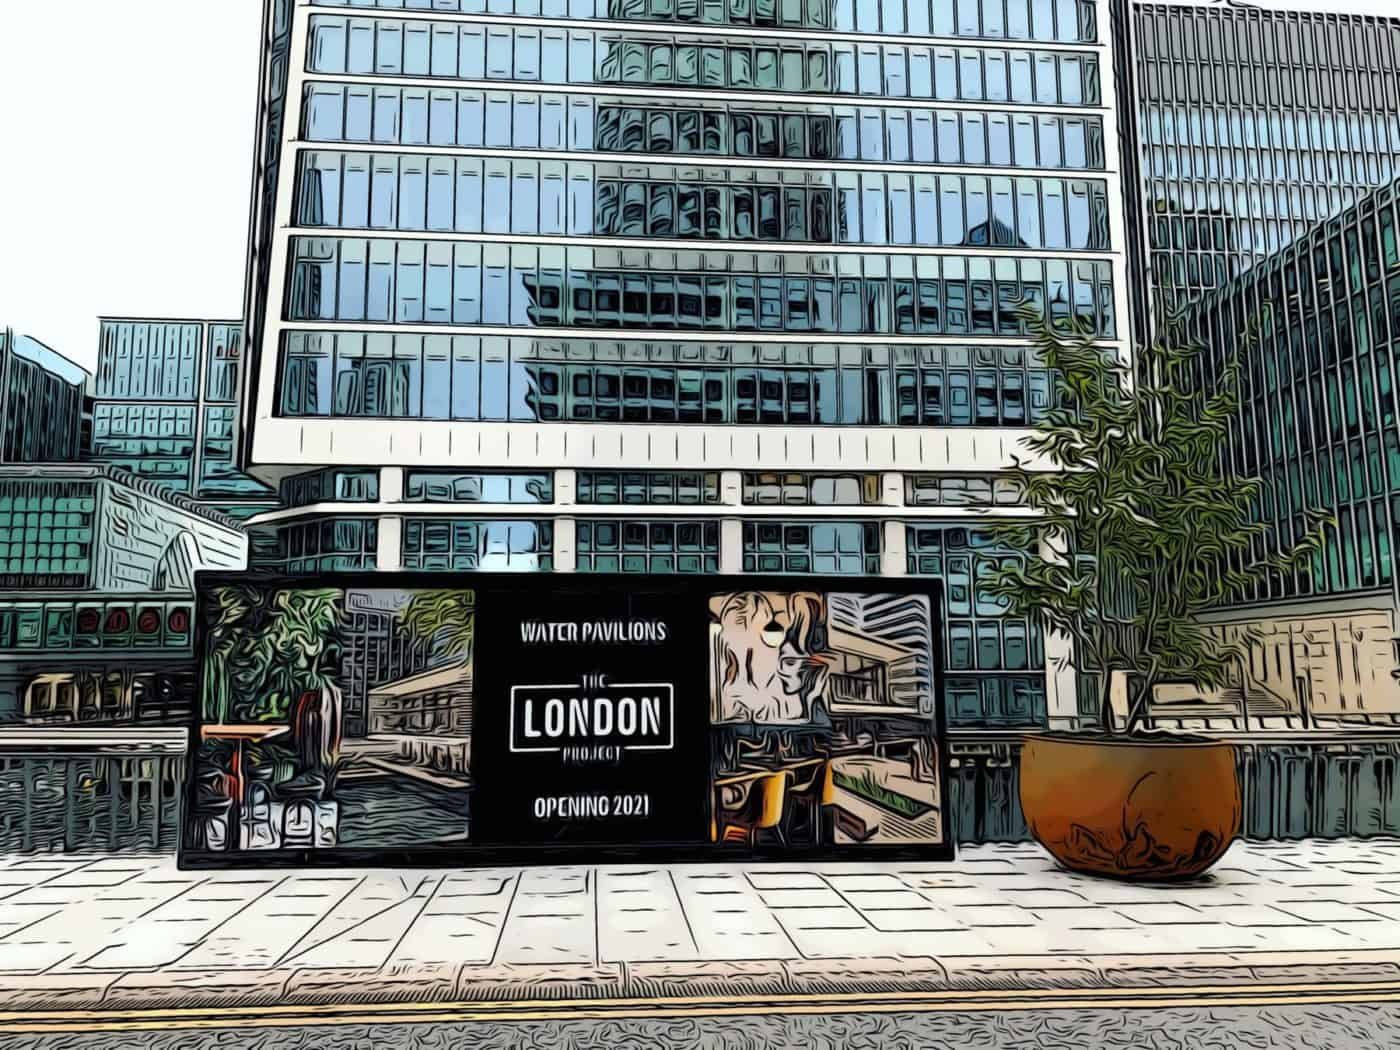 Wood Wharf advertising hoardings for Water Pavilions